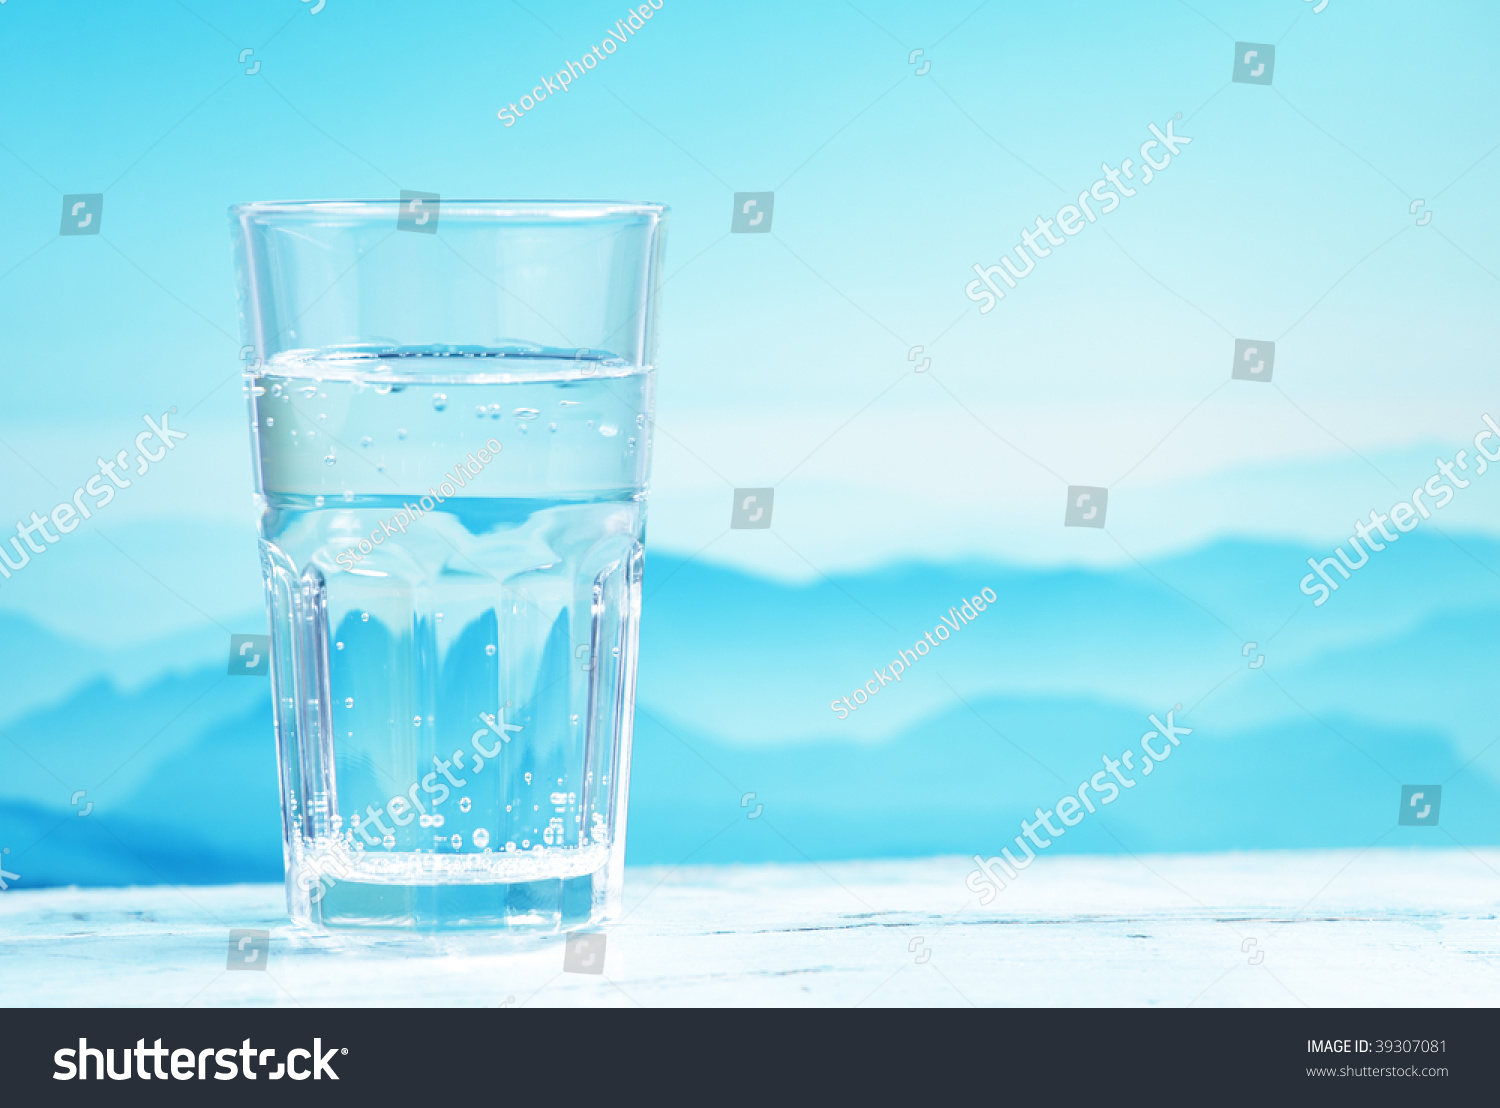 Glass Mineral Water Against Mountain Landscape Stock Photo